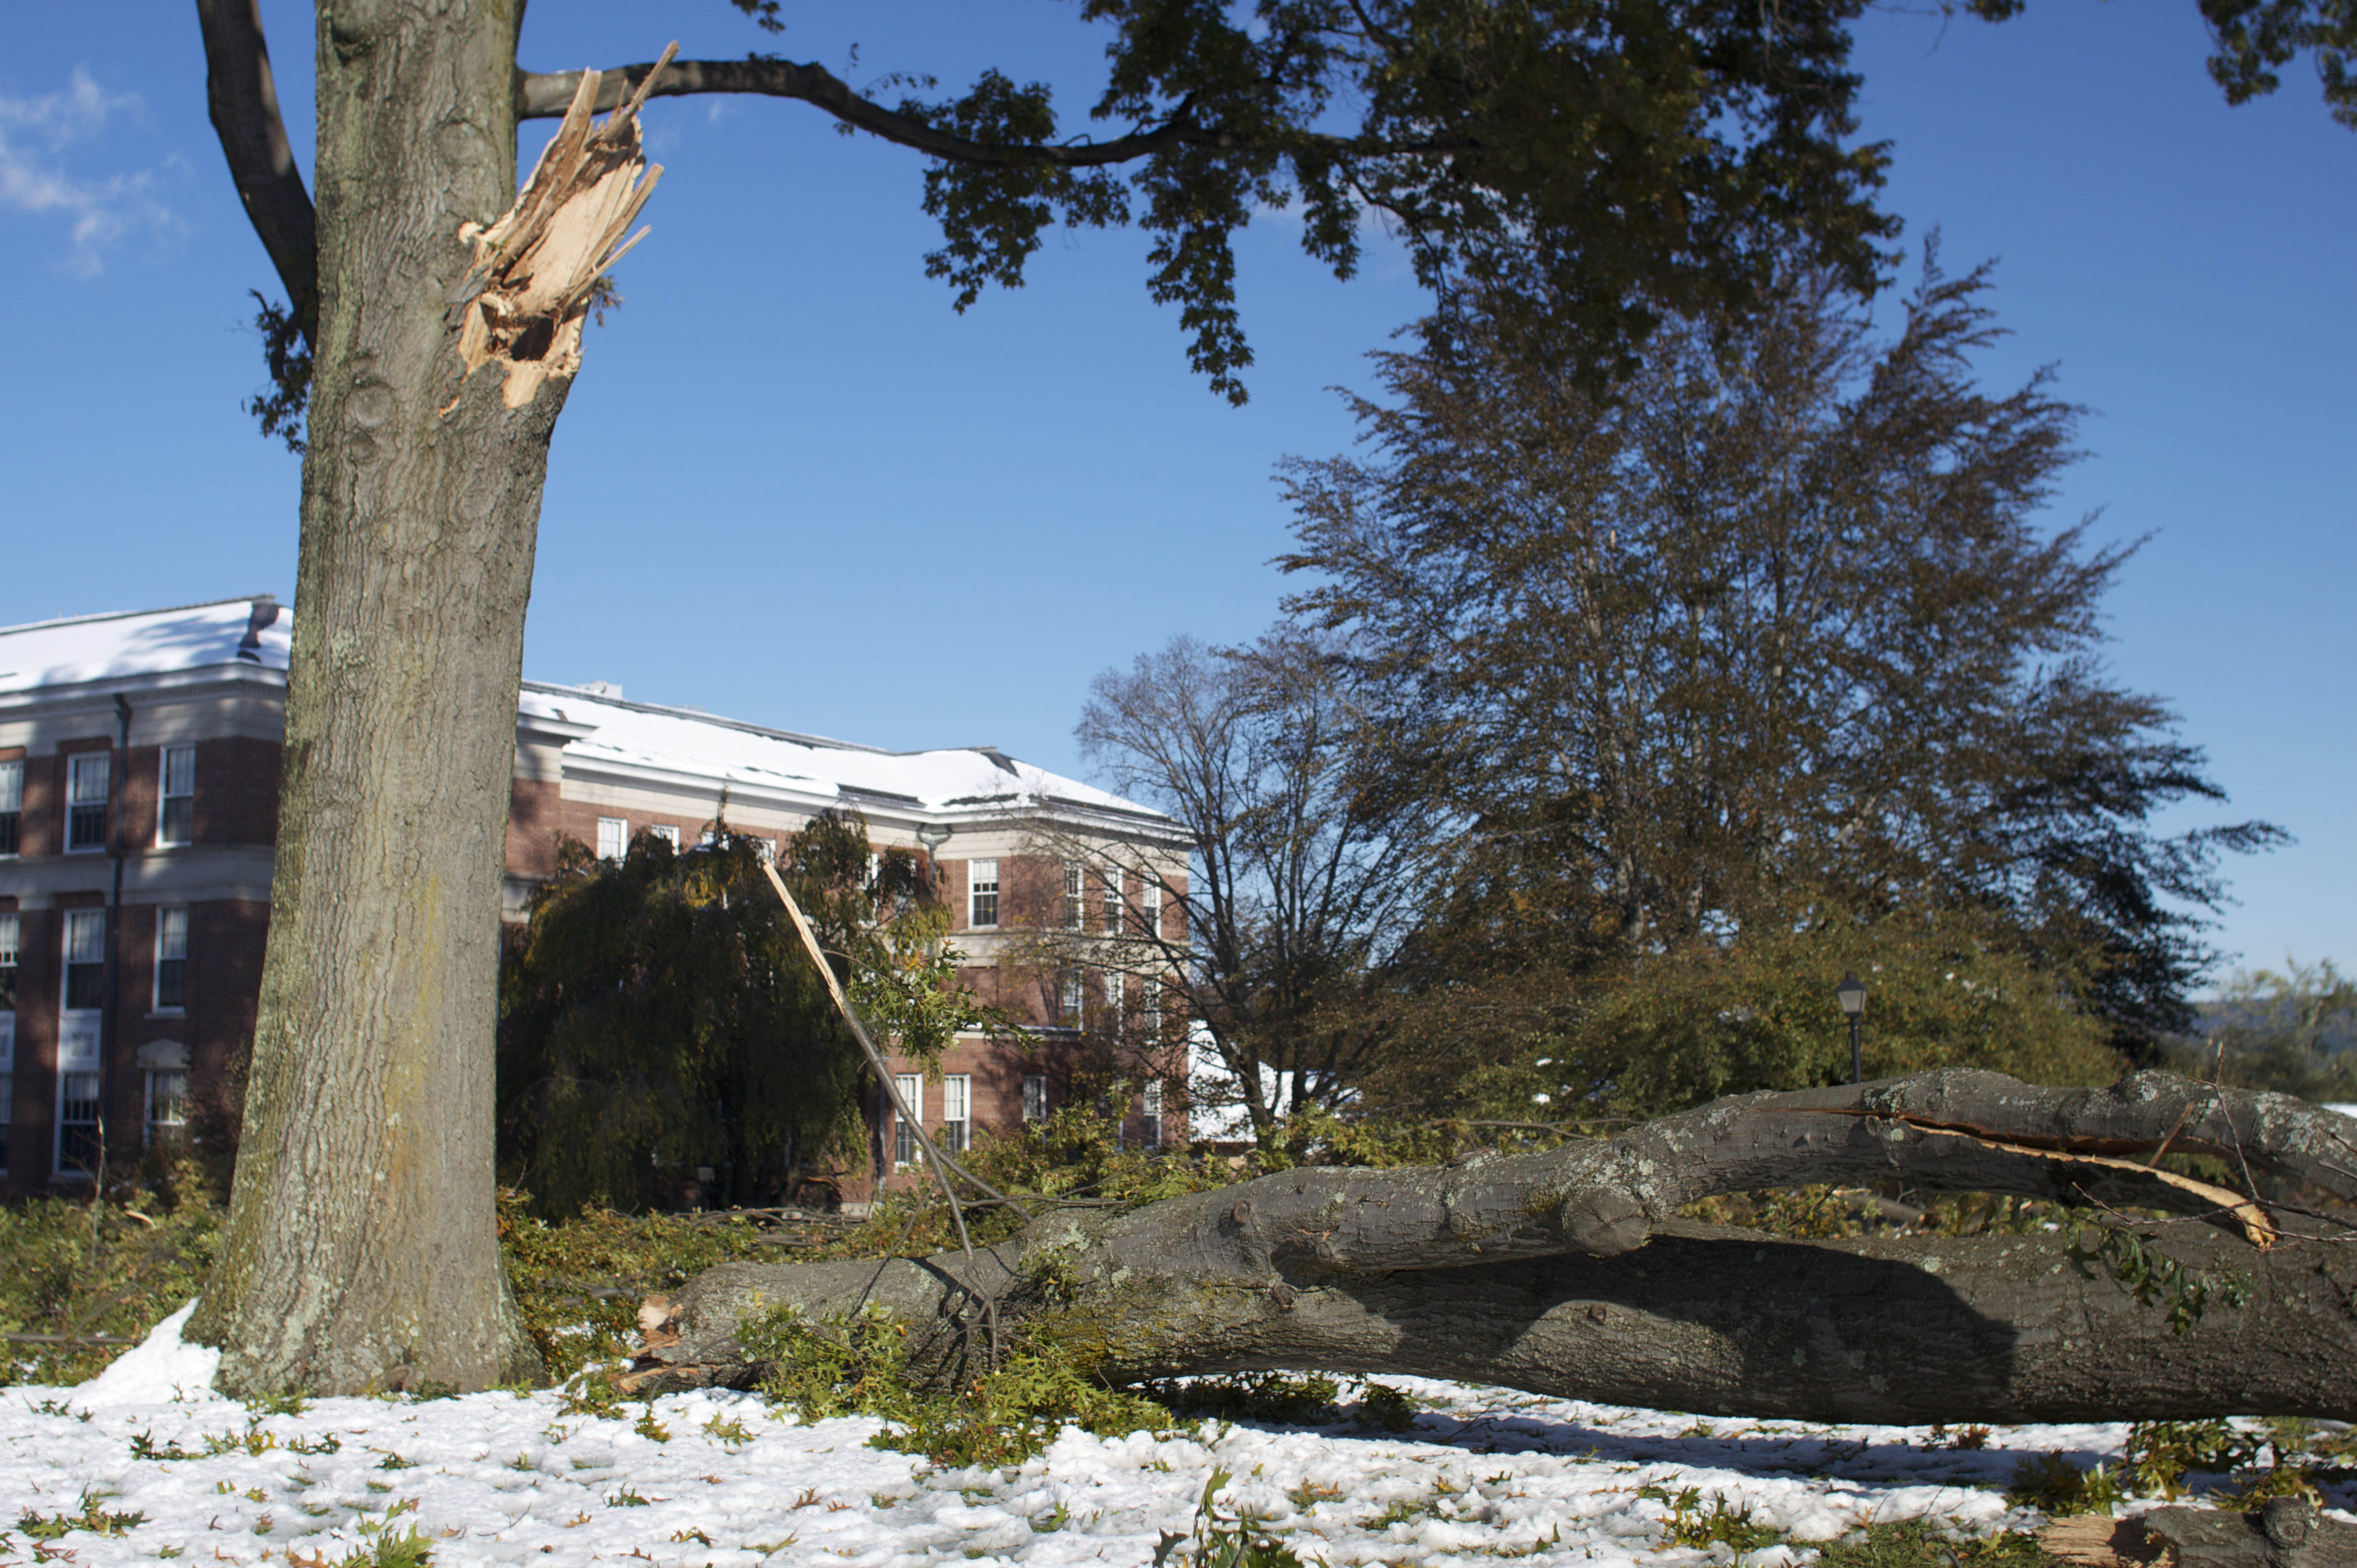 The snowstorm tattered many of the trees on campus, leaving most of the quads in